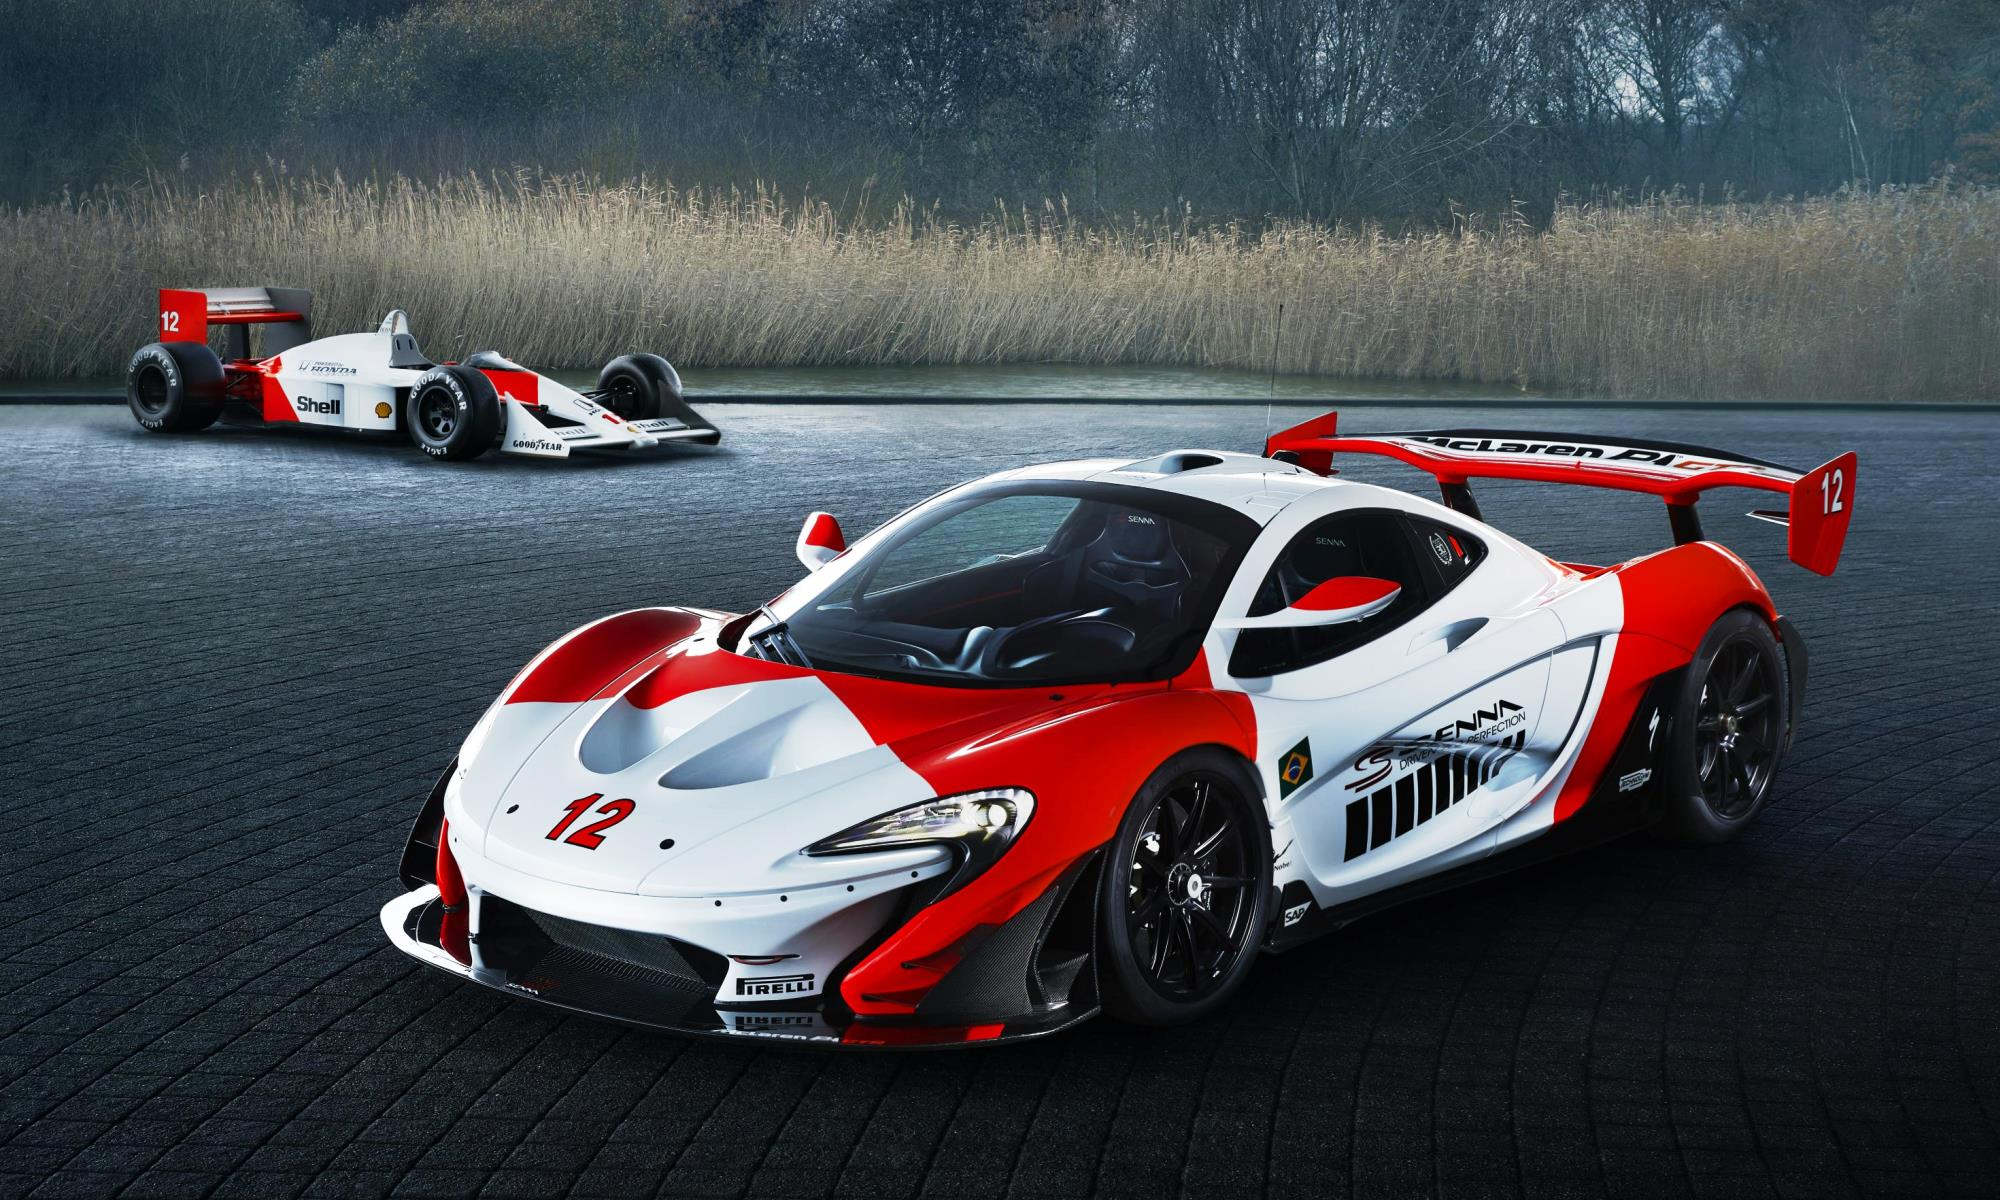 McLaren P1 GTR Beco and F1 car